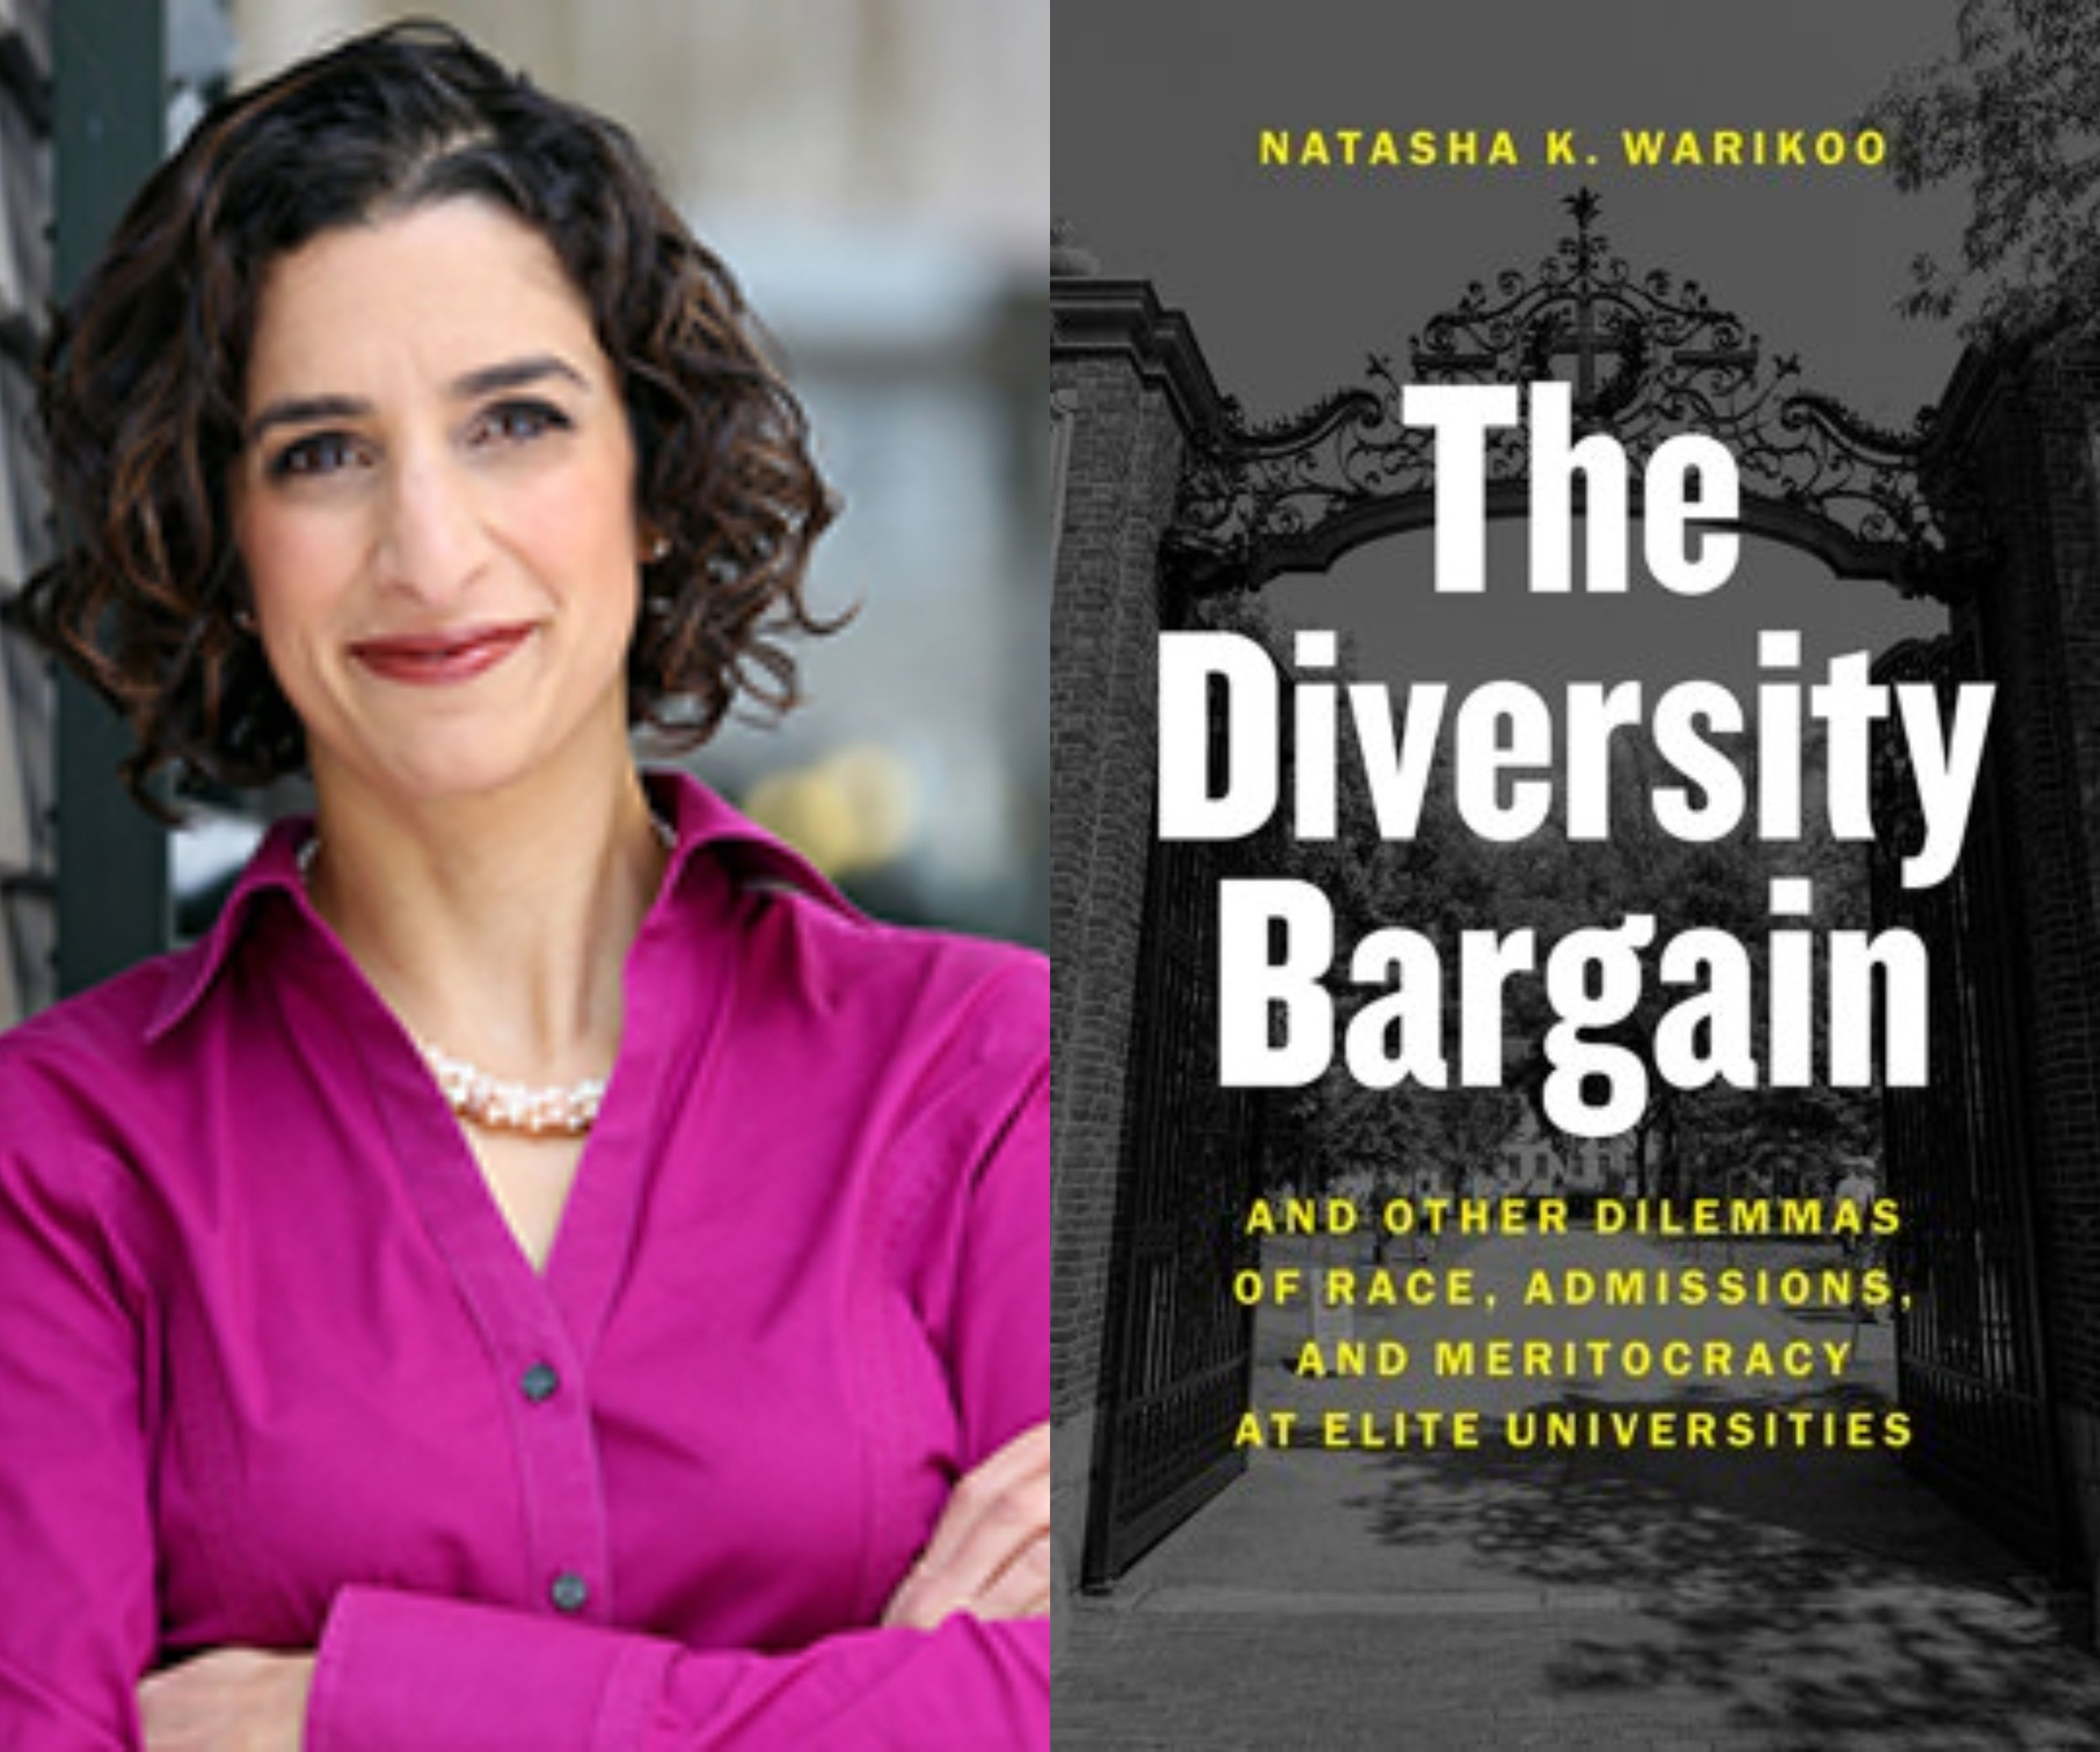 FREE SPEECH 43: Colorblindness, or Diversity? How to Think About Affirmative Action, with Natasha Warikoo - READ MORE